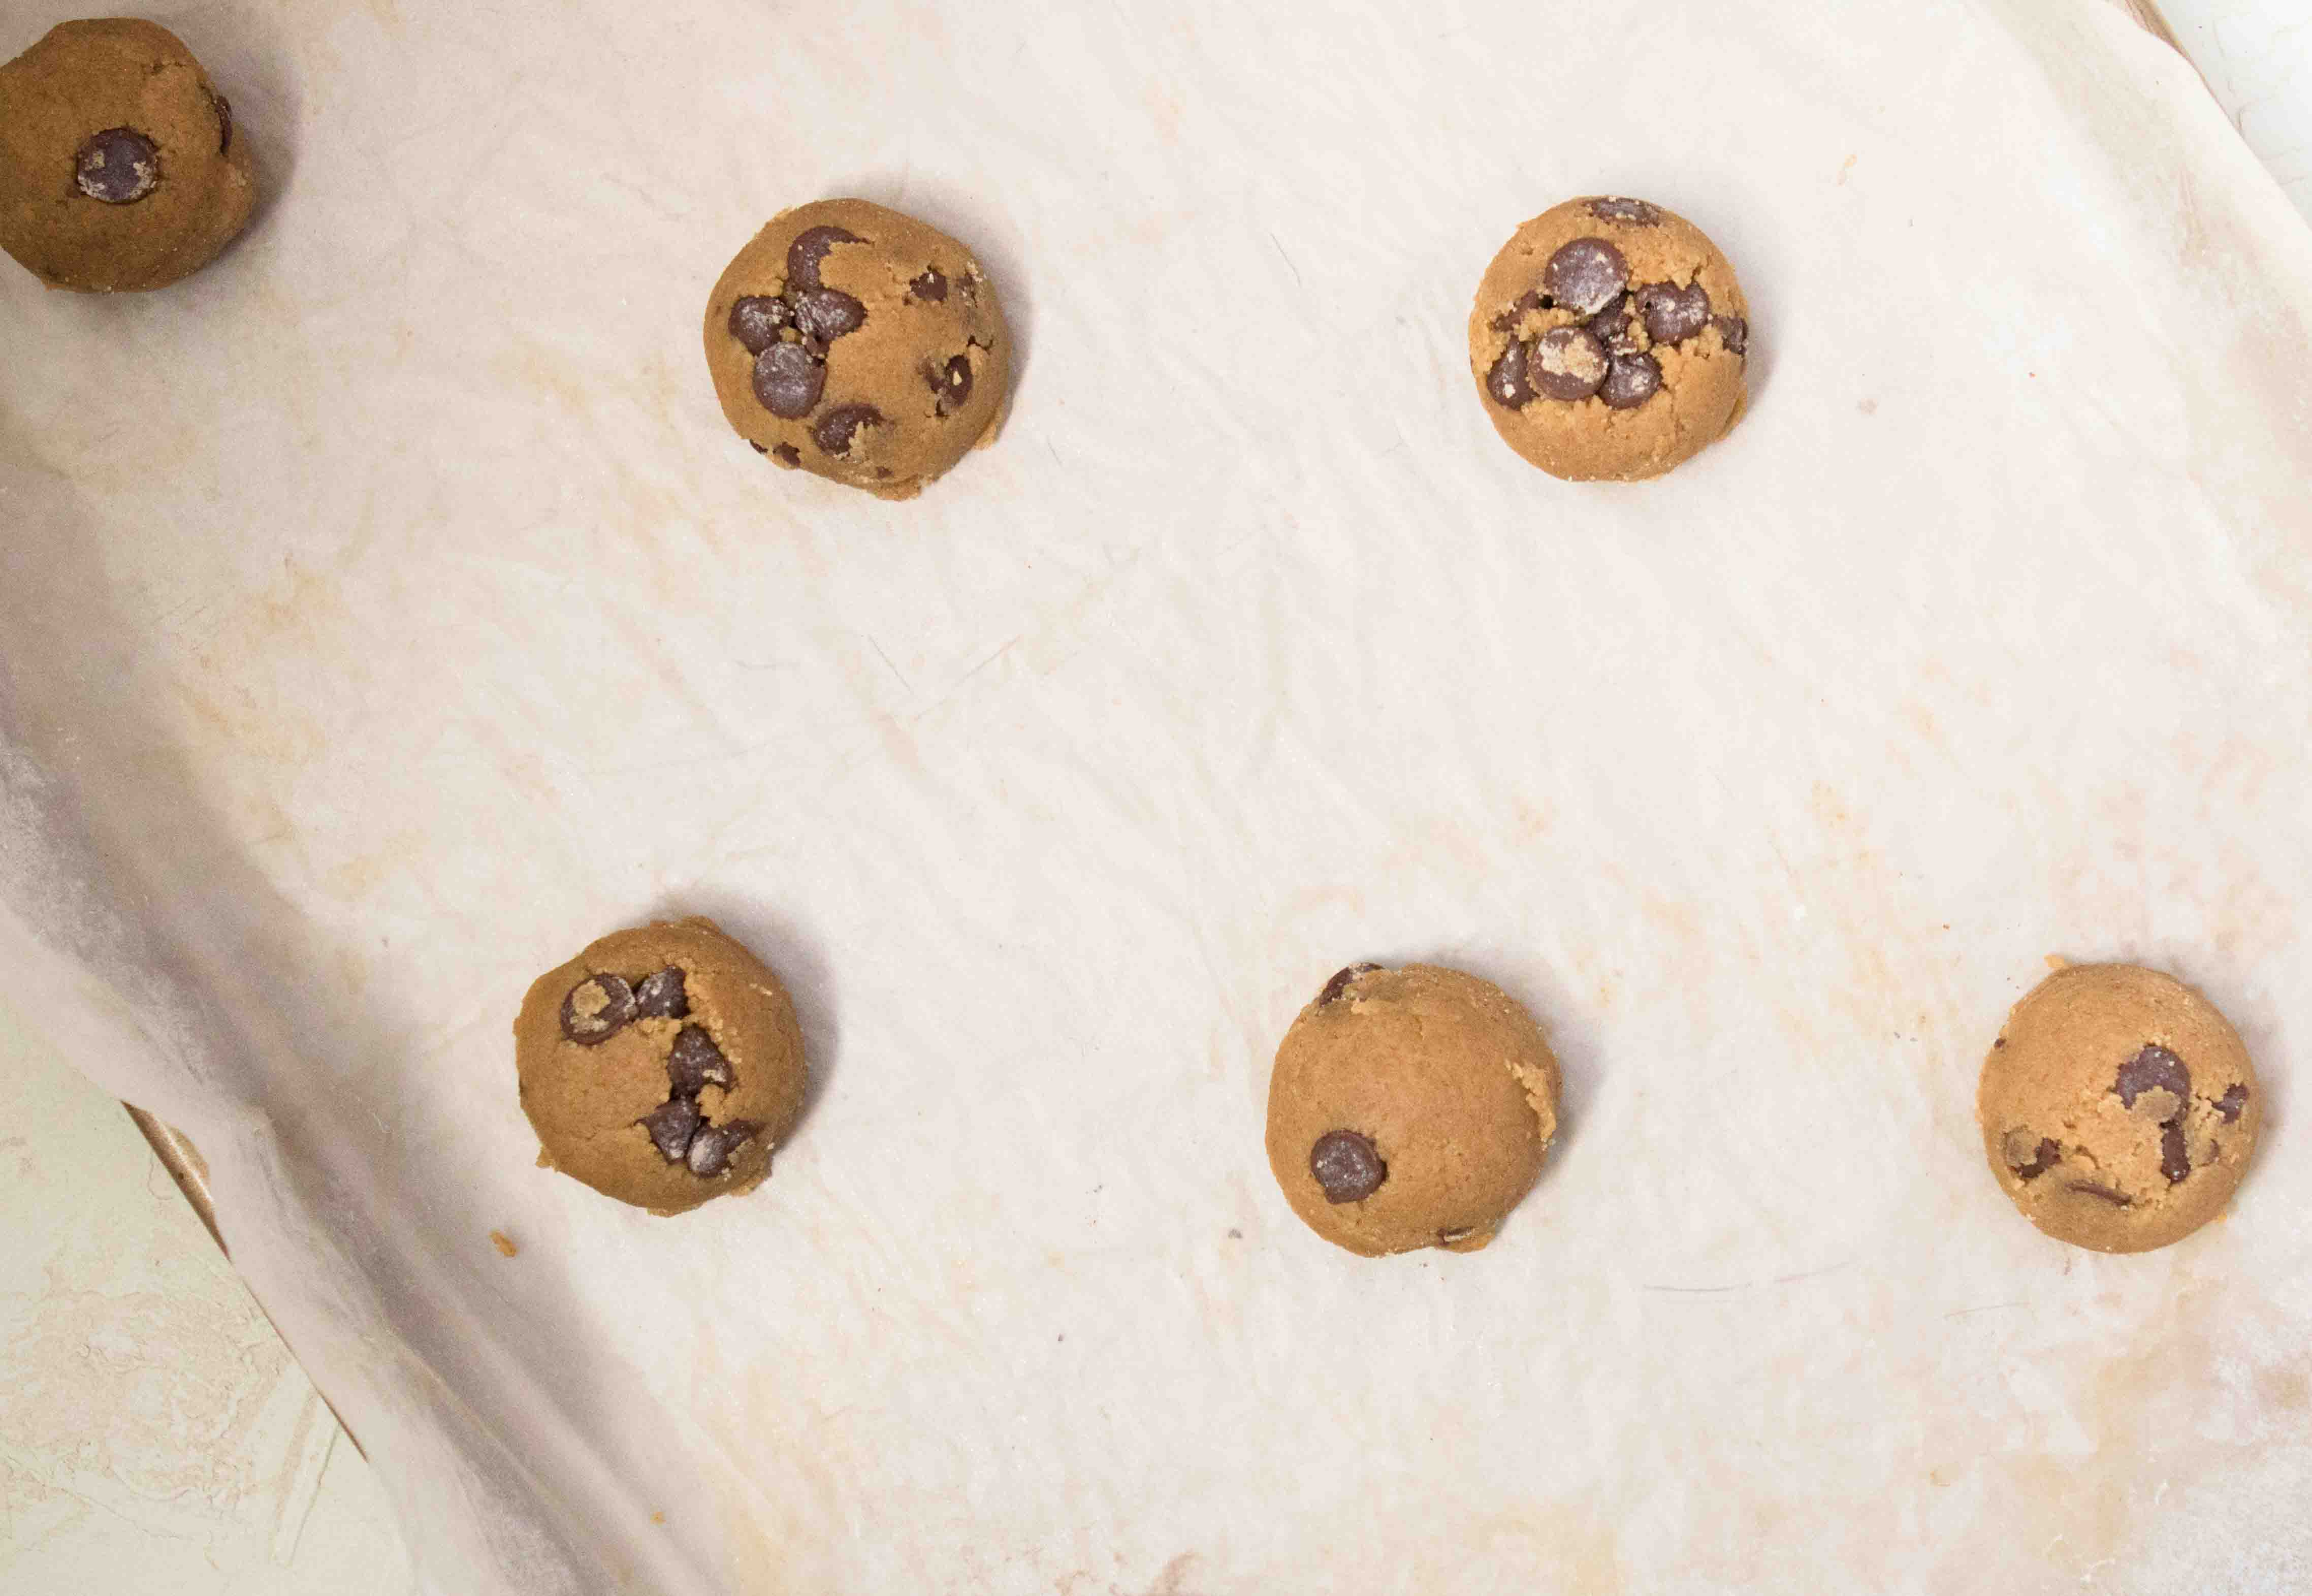 Chocolate chip cookie dough before baking